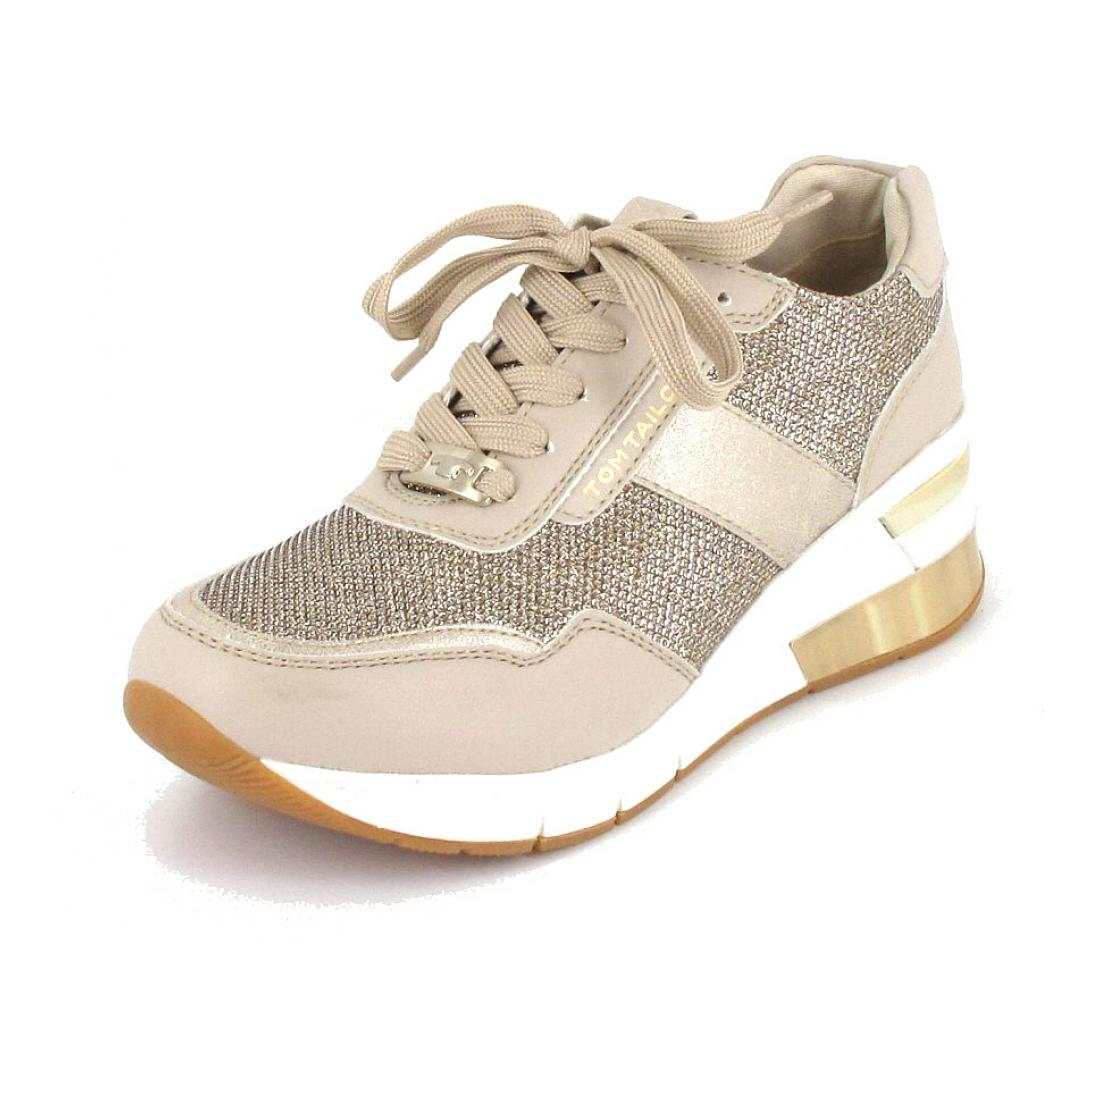 Tom Tailor Sneaker beige-gold